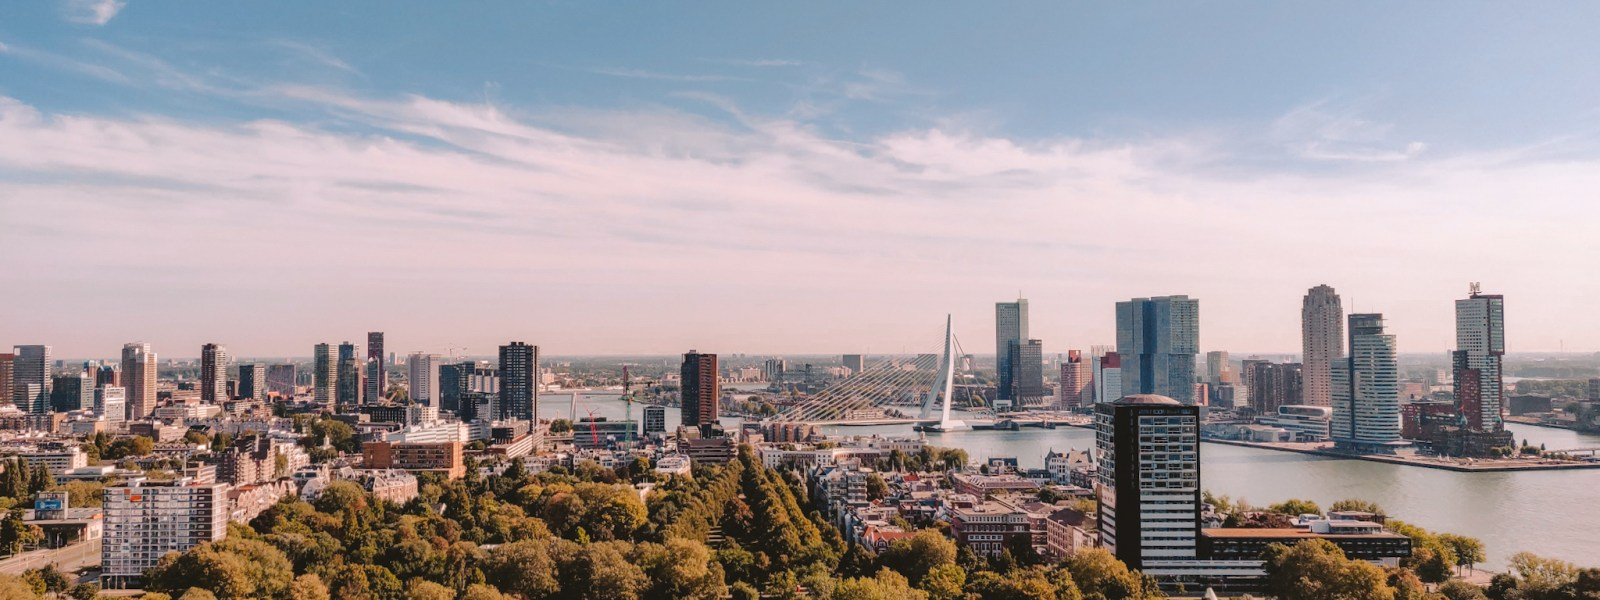 Visit Rotterdam-North: hotspots, vintage and local products